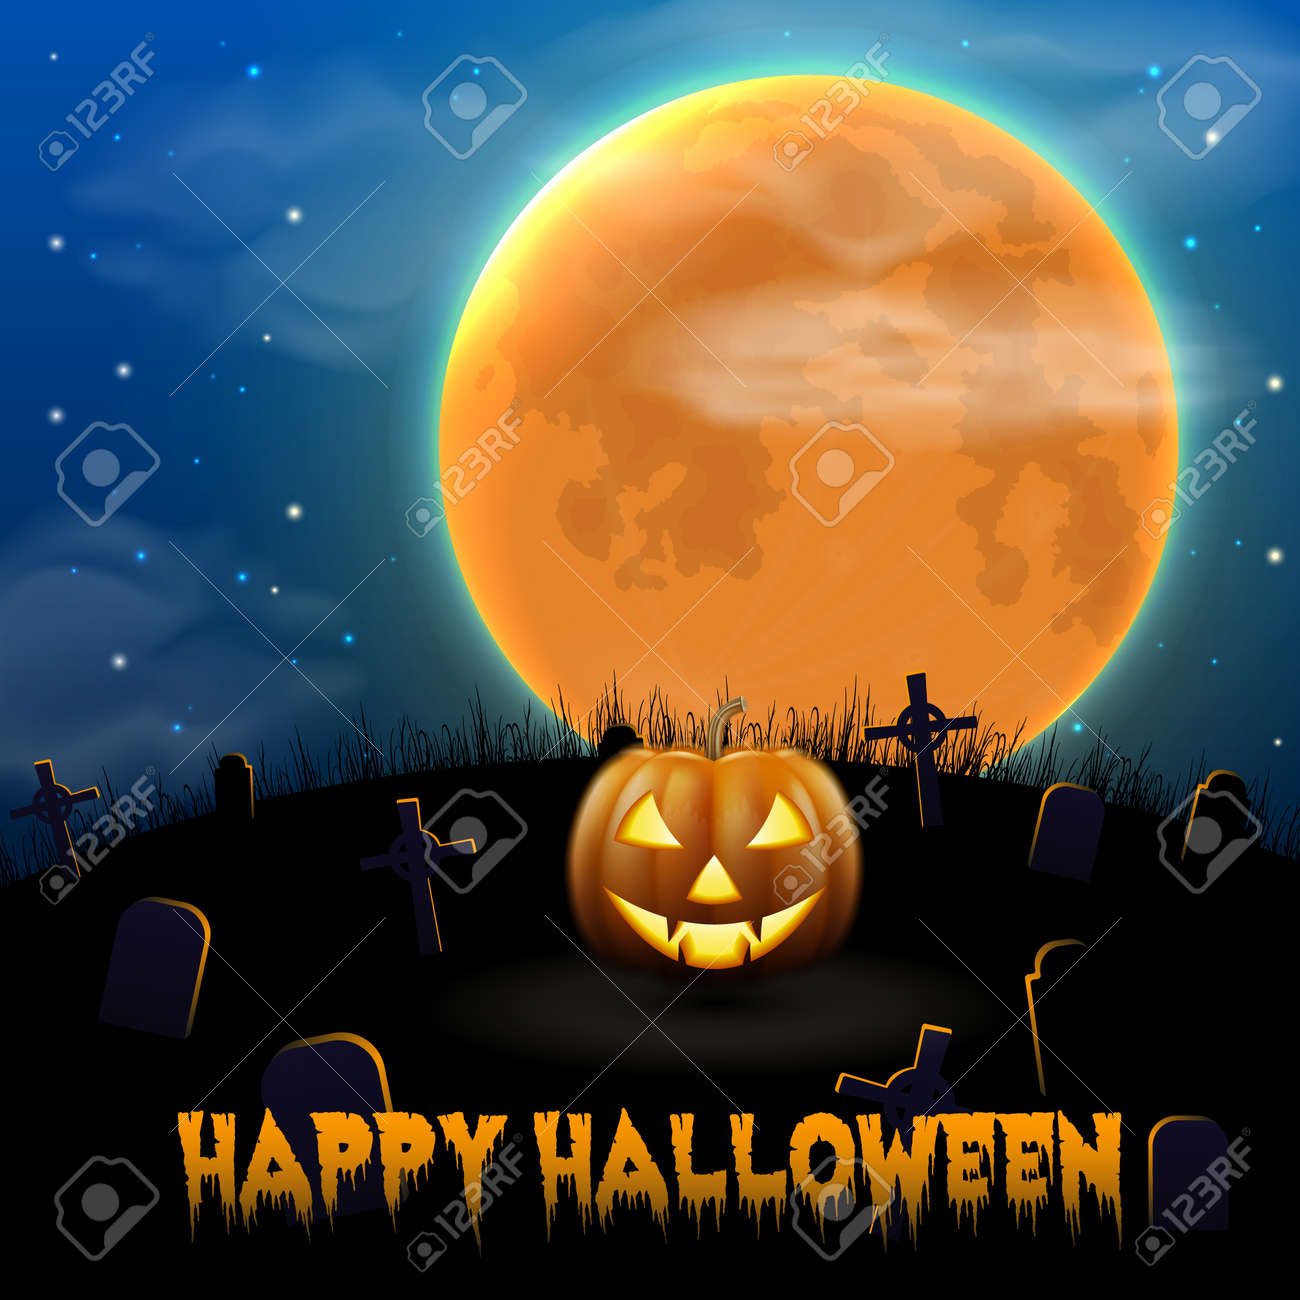 Happy Halloween night background with scary old graveyard and pumpkin - 109145042